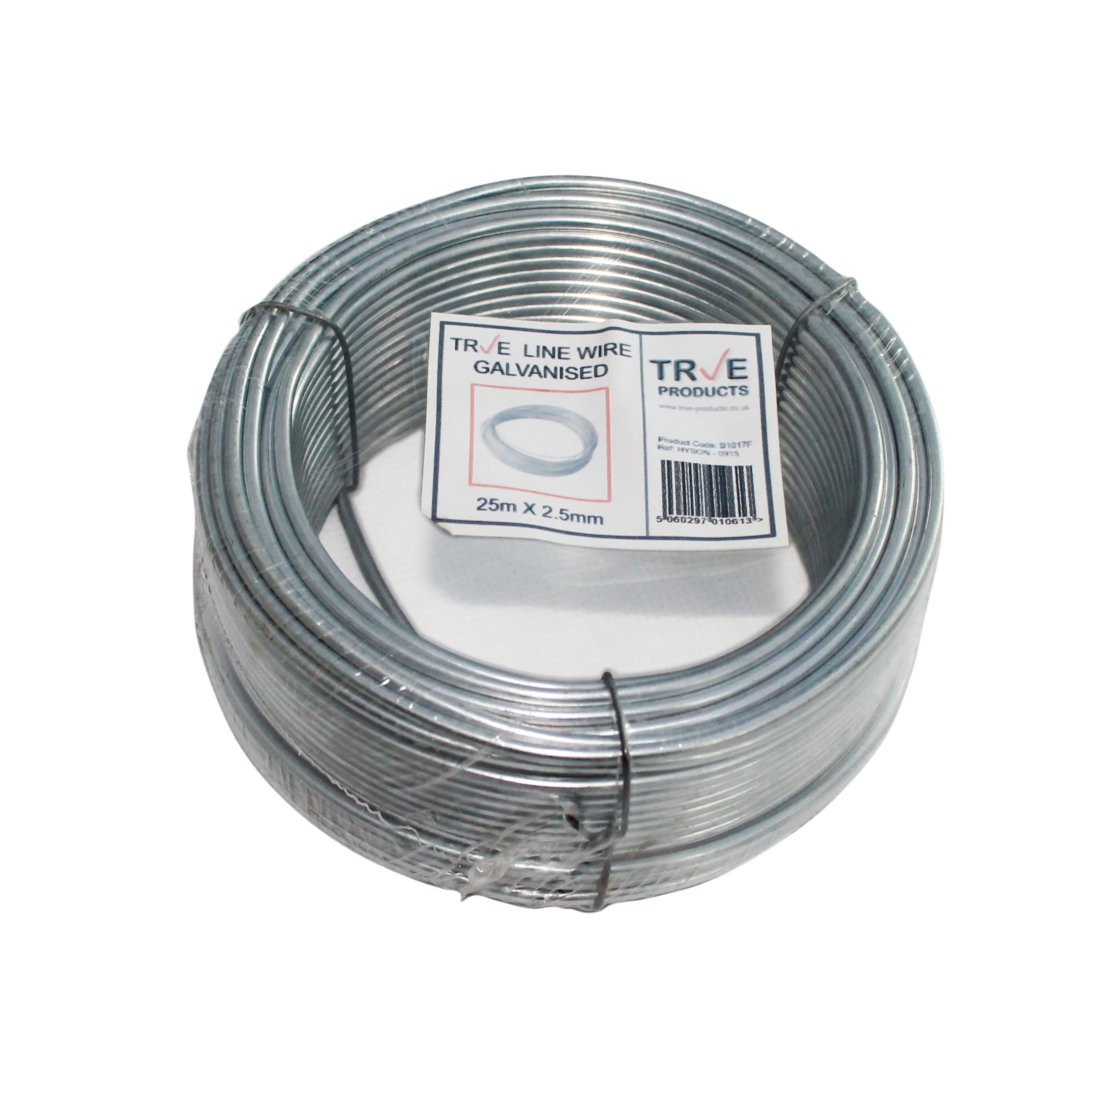 Galvanised Line Wire 25m